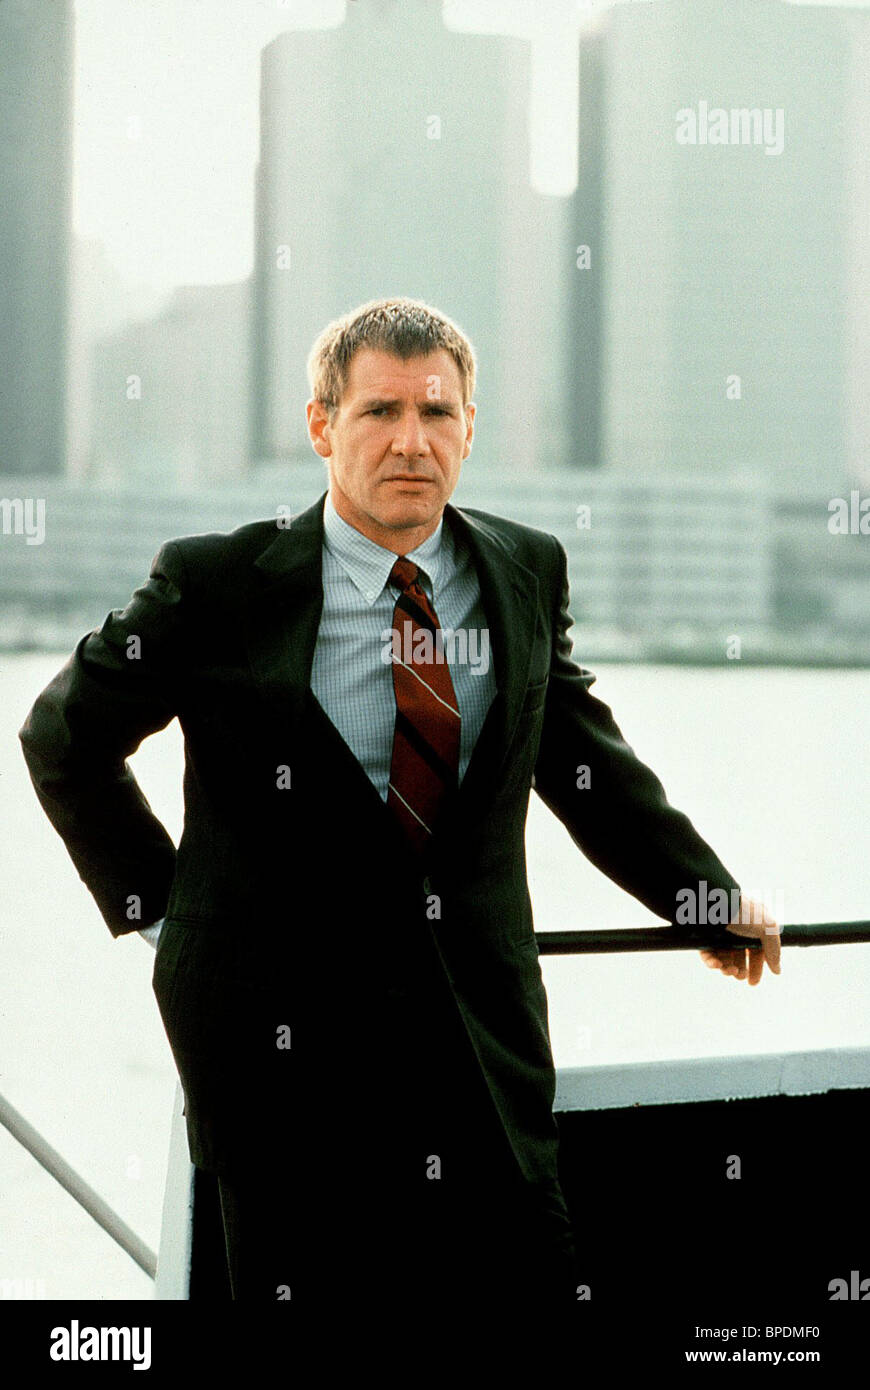 harrison ford presumed innocent 1990 - Presumed Innocent Movie